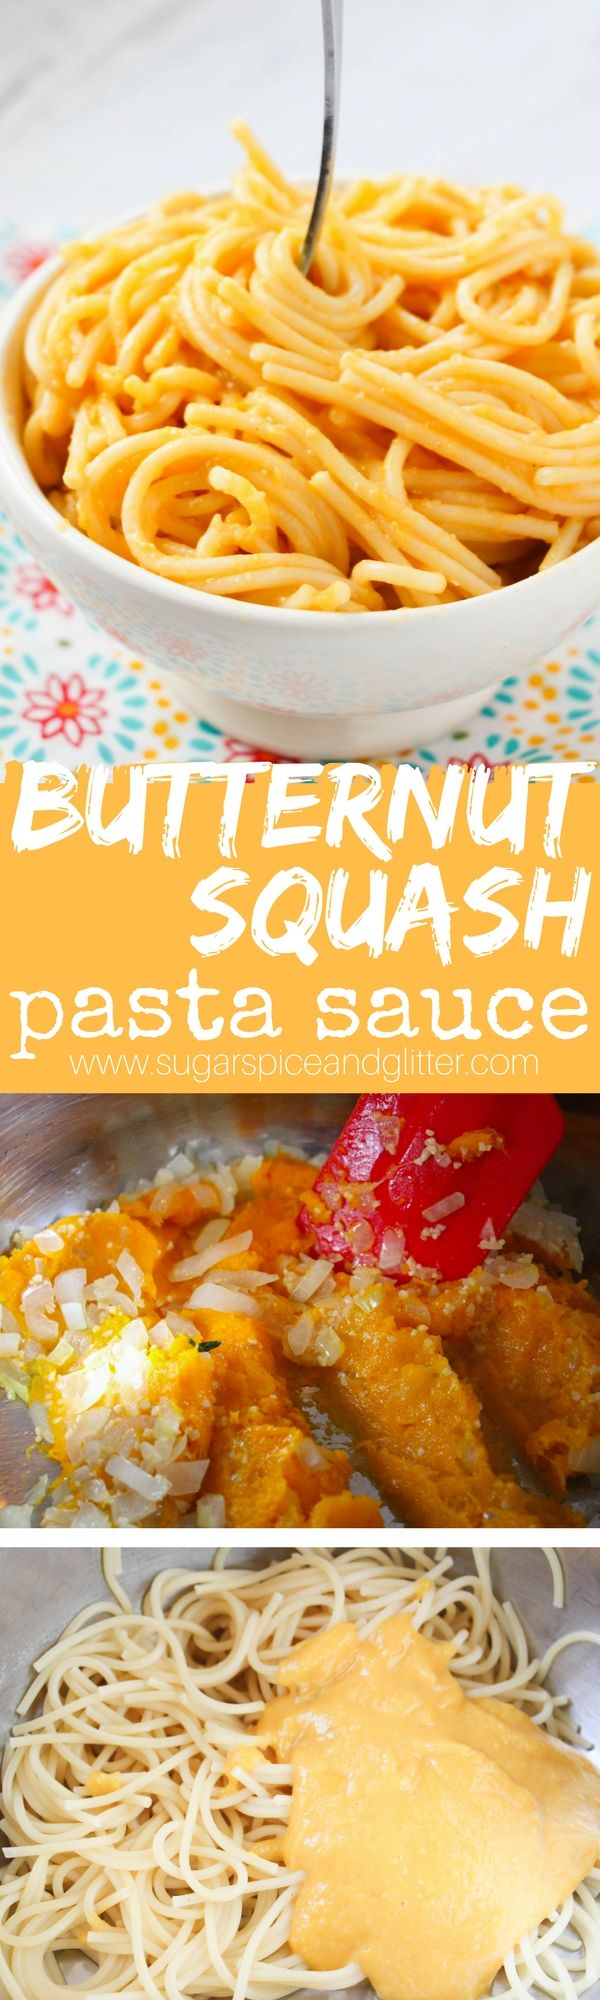 Butternut Squash Spaghetti Sauce - A dairy-free, super creamy and rich sauce with that delicious nutty, sweet yet earthy flavor of butternut squash. A unique pasta sauce recipe your kids will love